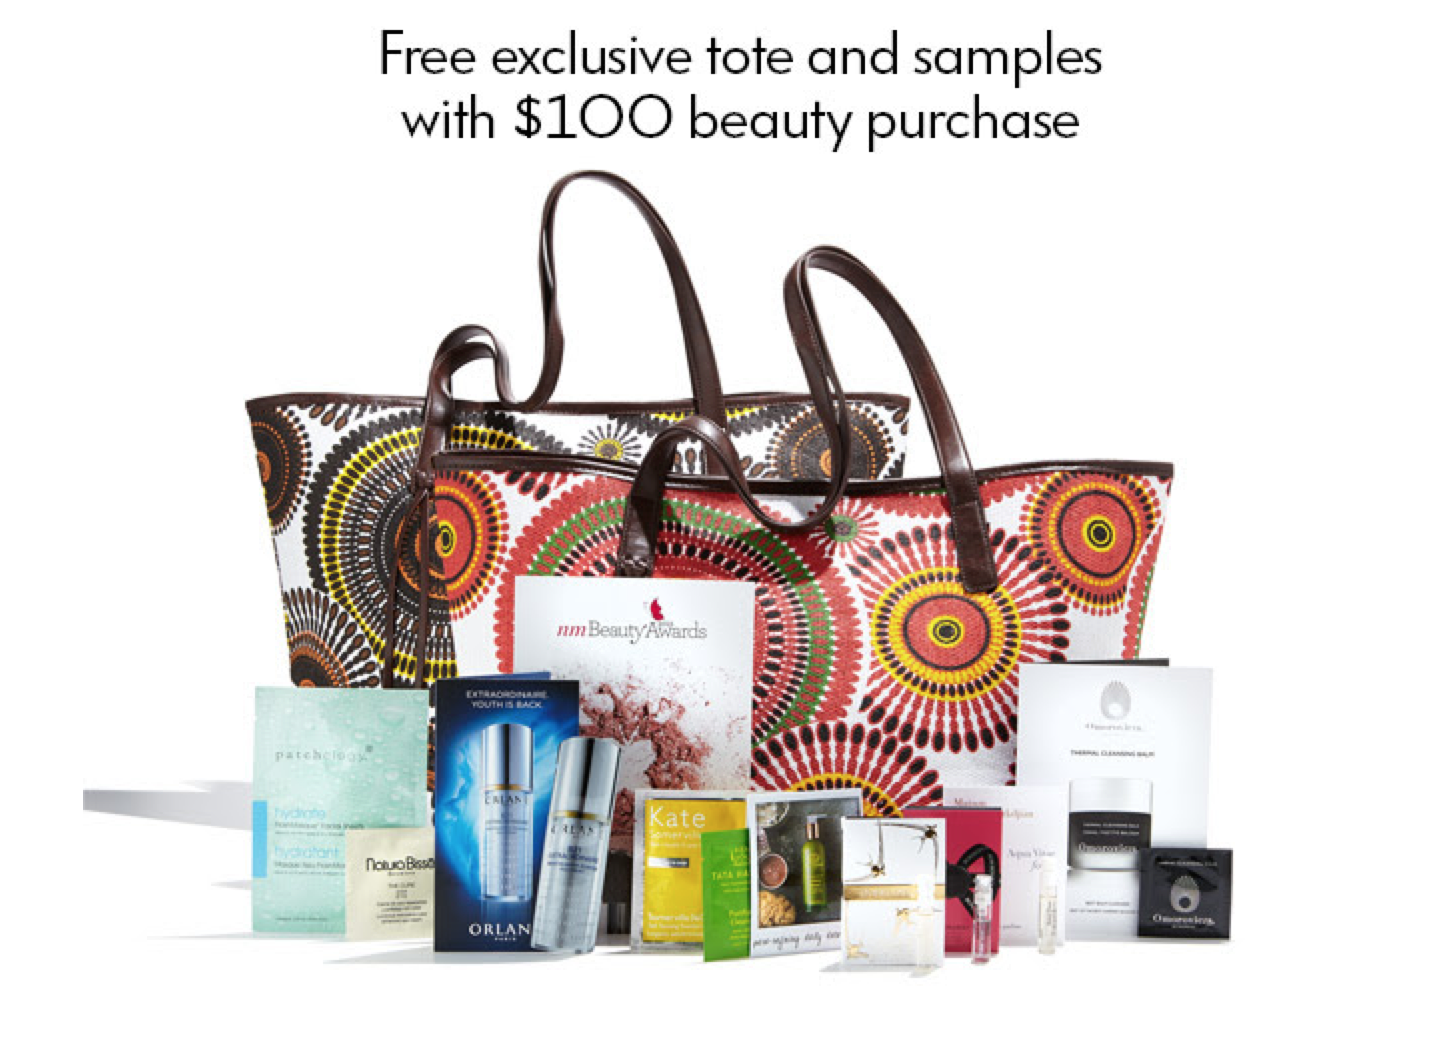 Neiman Marcus GWP - Free Tote and Samples!